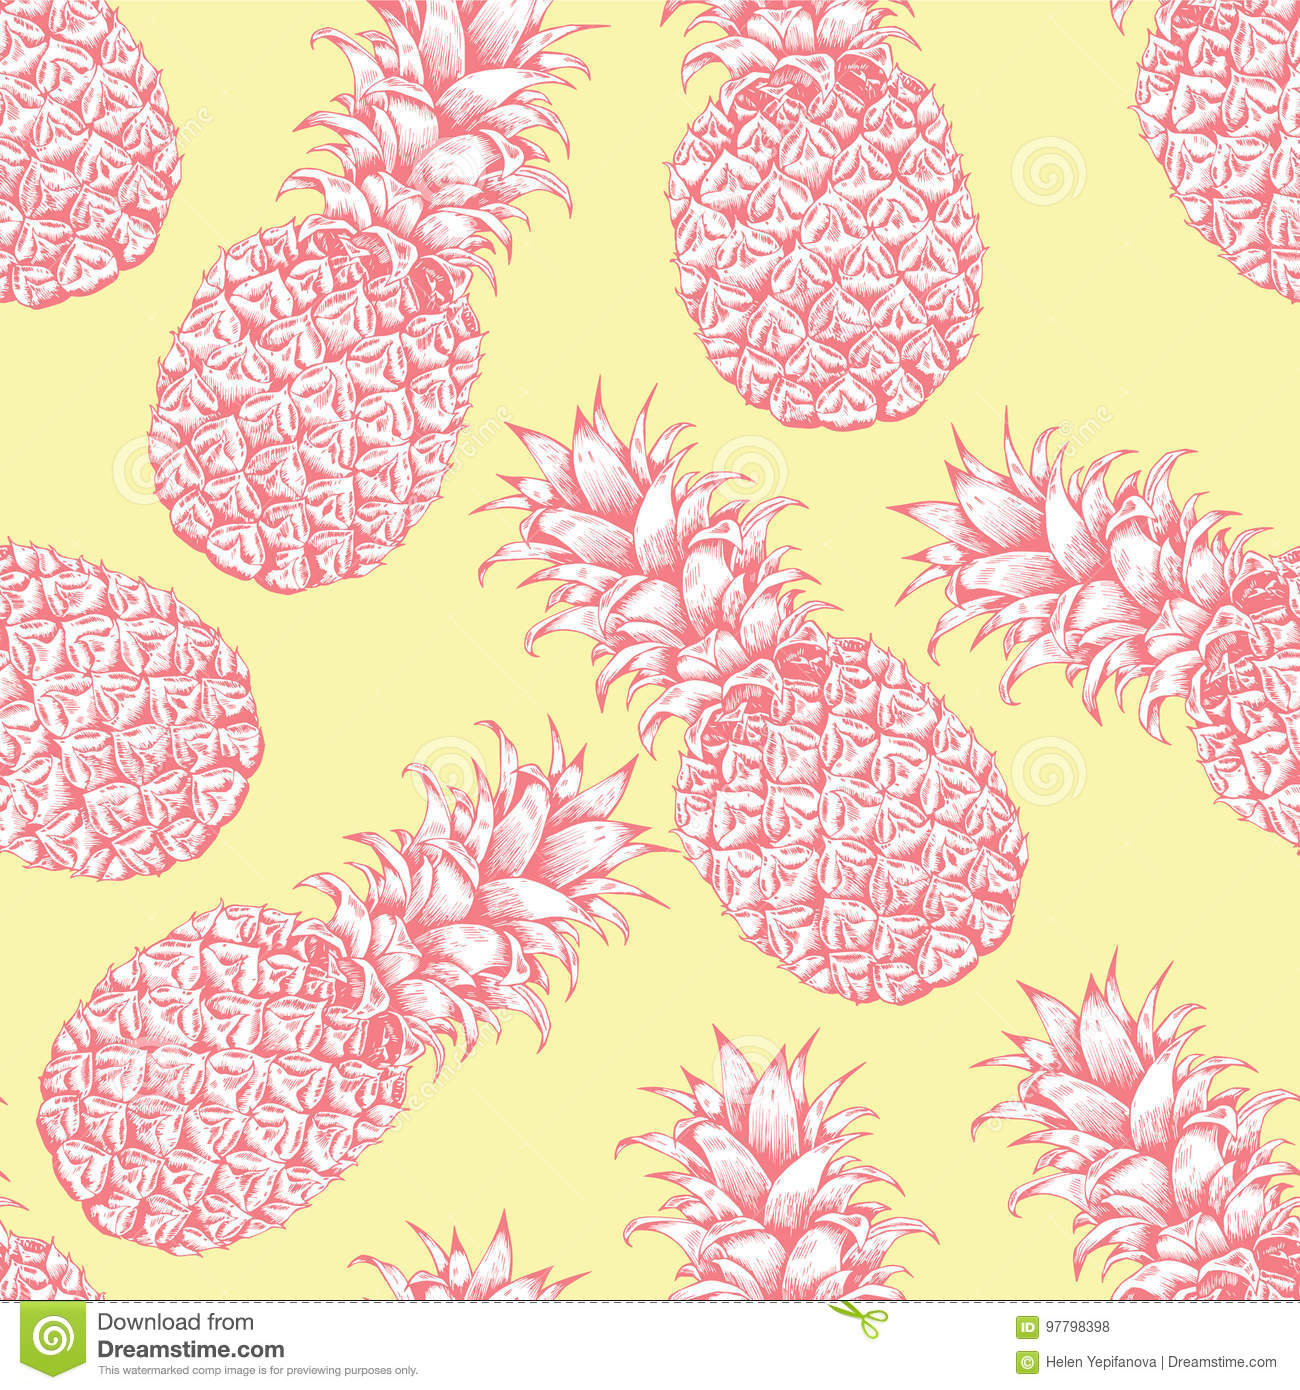 Abstract seamless pattern, wallpaper, background, backdrop Pink yellow white hand drawn pineapple.